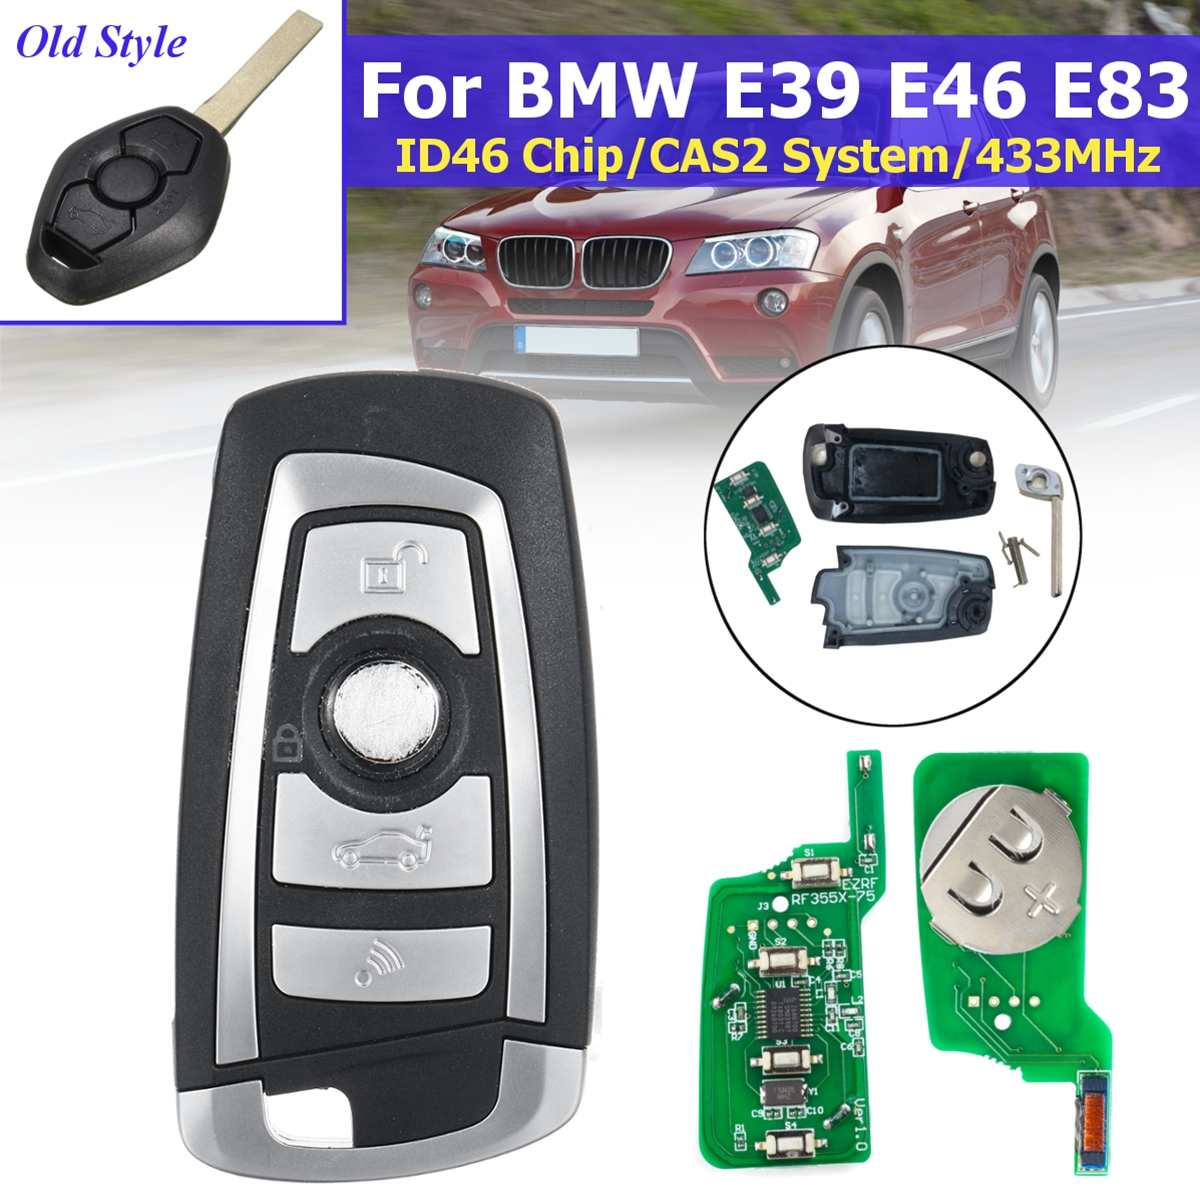 315MHz/433MHz Remote Flip <font><b>Key</b></font> with ID46 Chip CAS2 System HU92 Blade 4 Buttons For <font><b>BMW</b></font> E39 E46 <font><b>E83</b></font> X5 X3 Z3 image